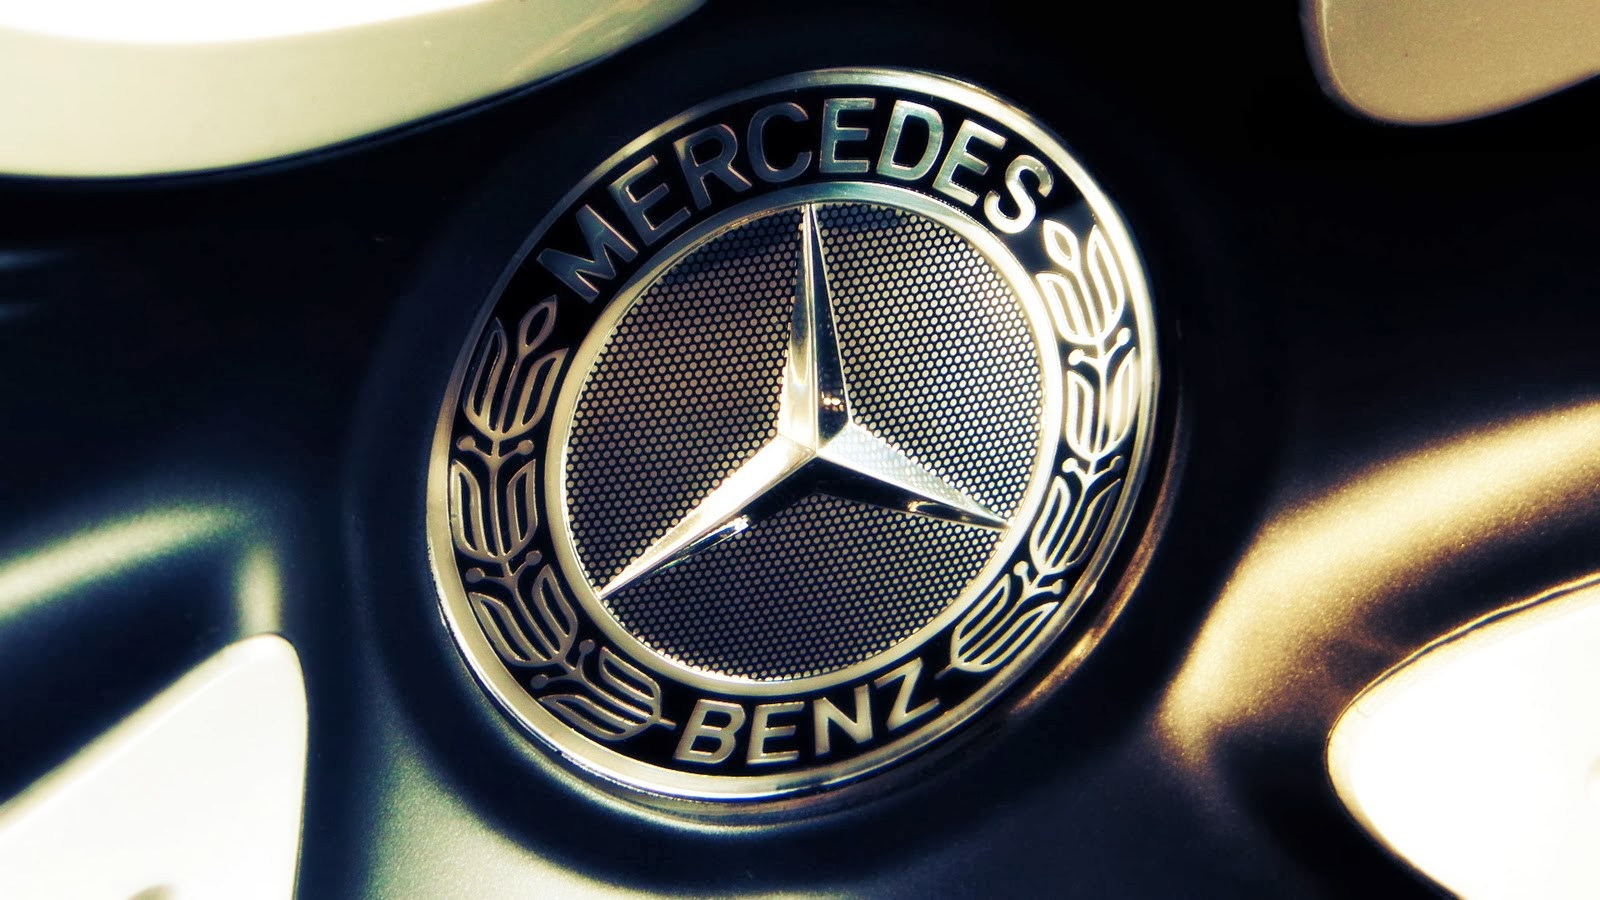 Construir Marcas en China: Mercedes-Benz Travel | Branzai | Branding y Marcas